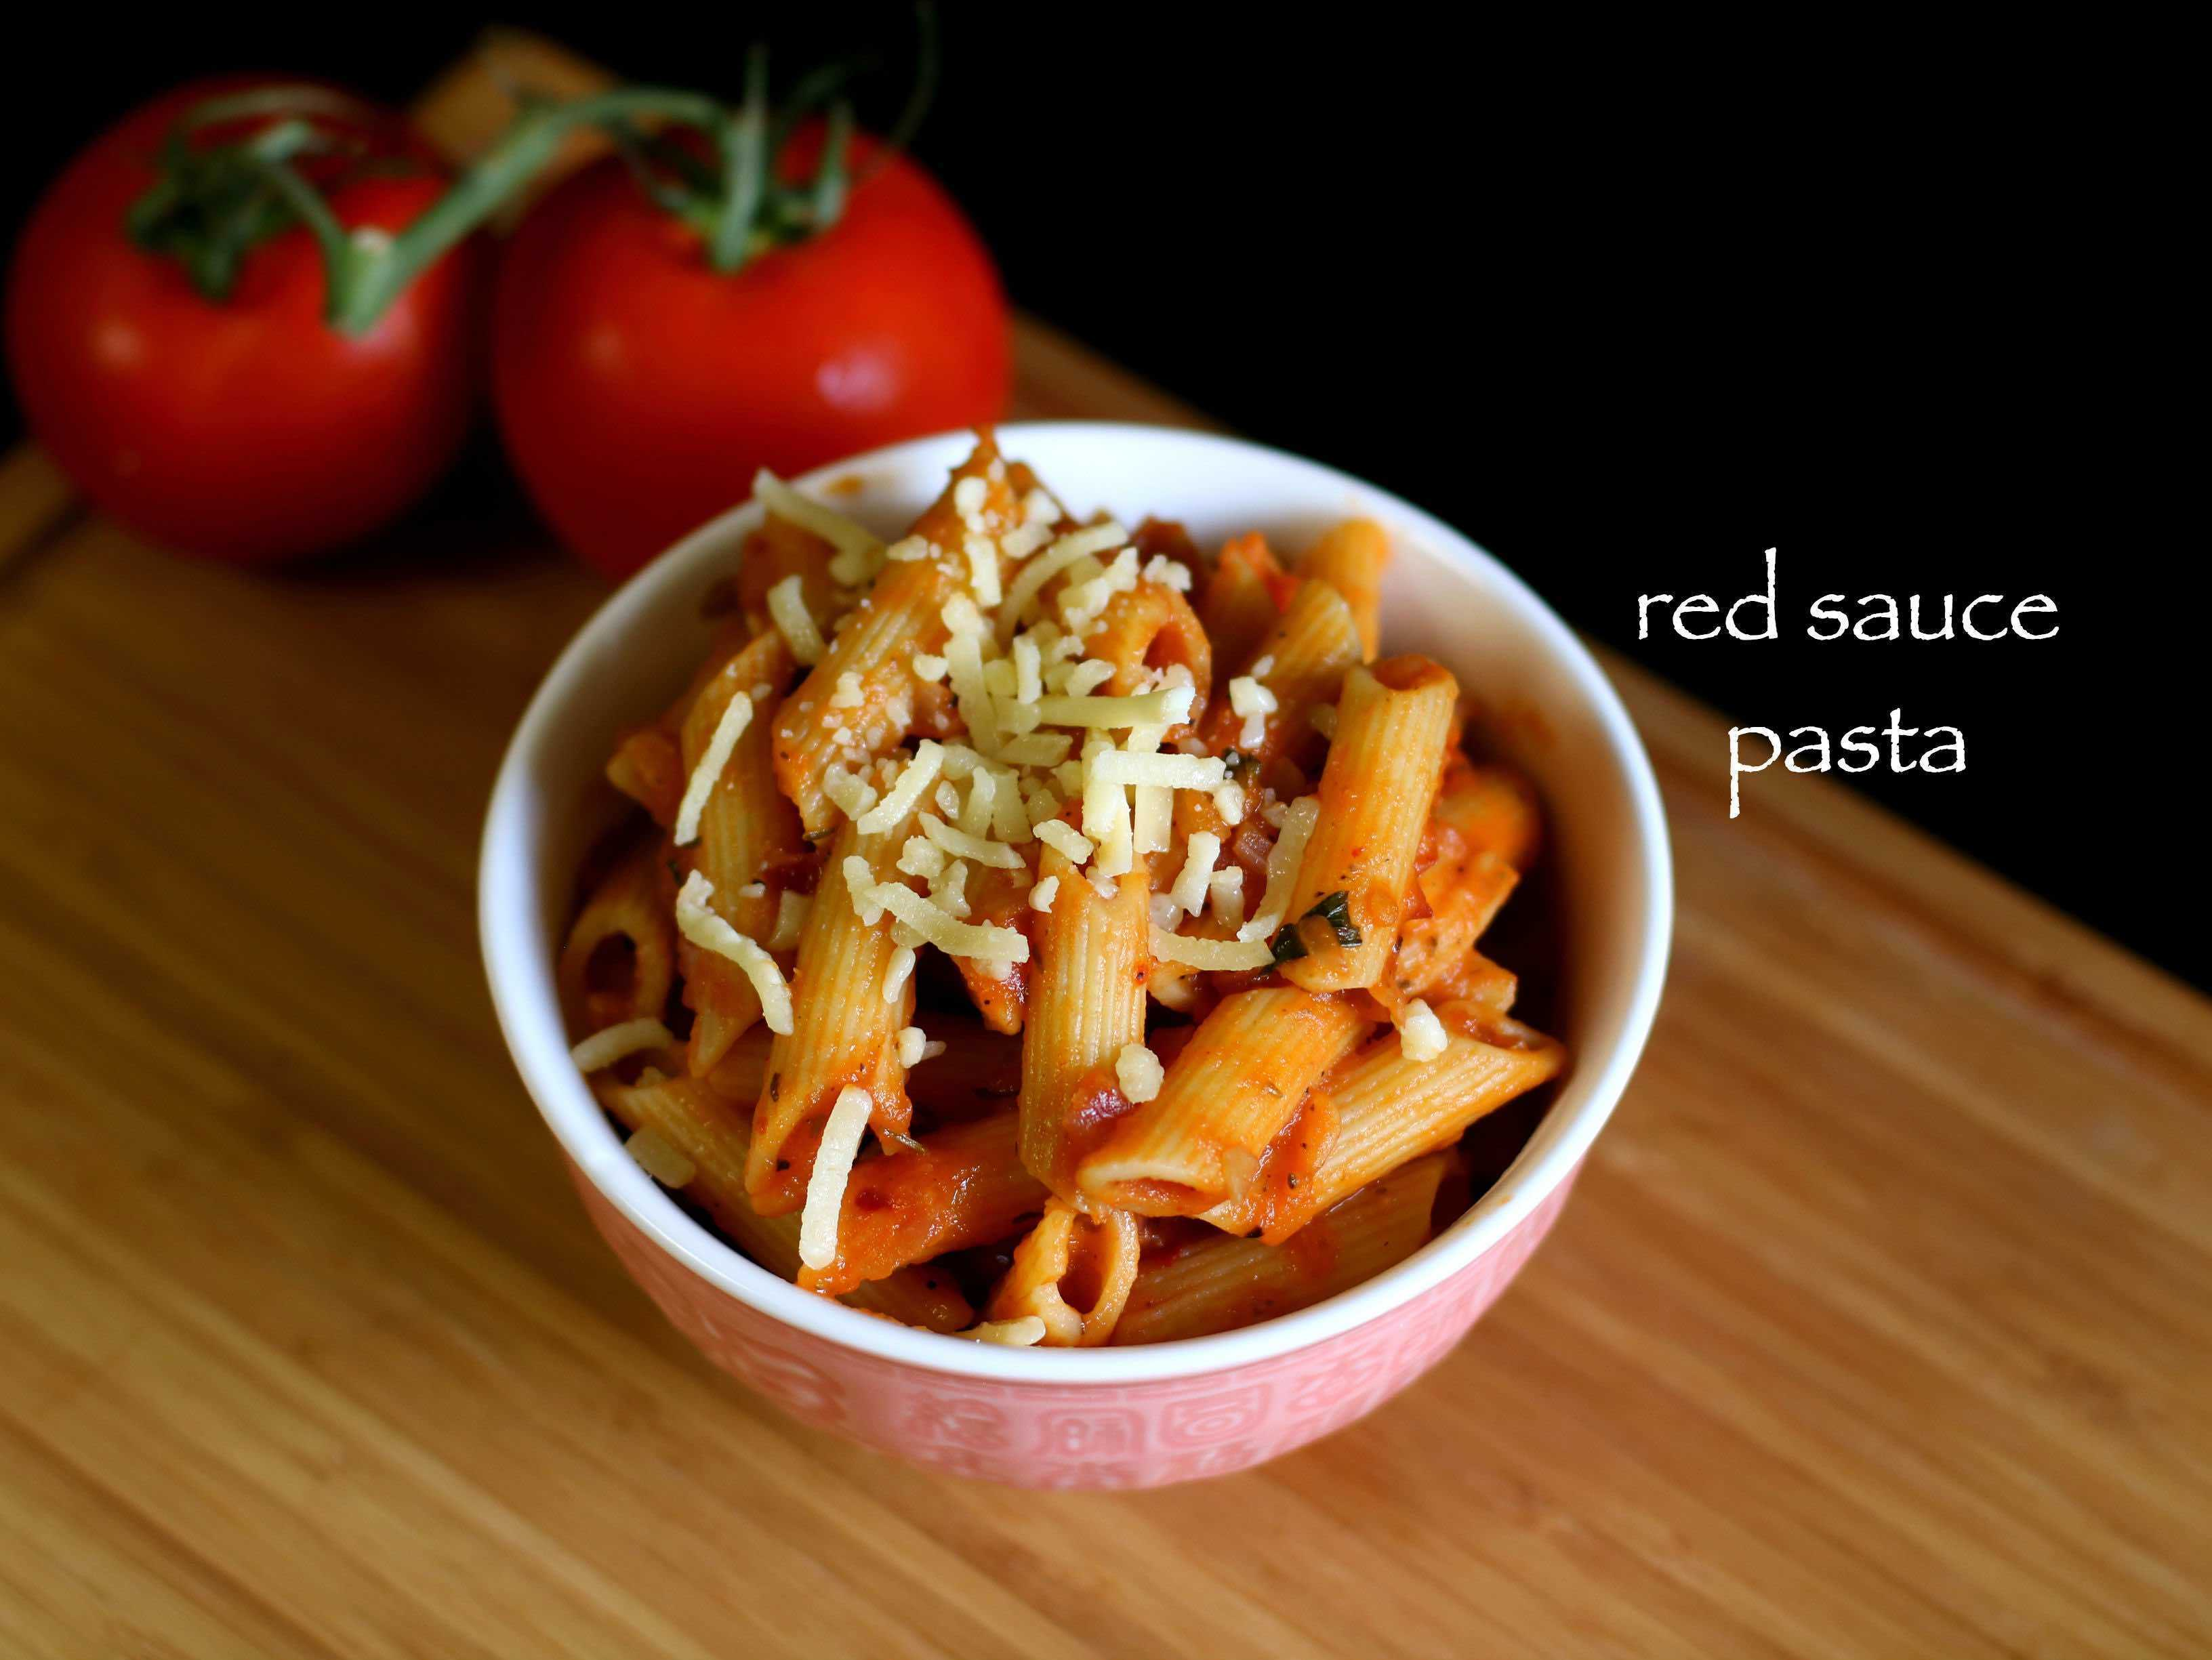 red sauce pasta recipe | pasta in red sauce recipe | tomato pasta recipe